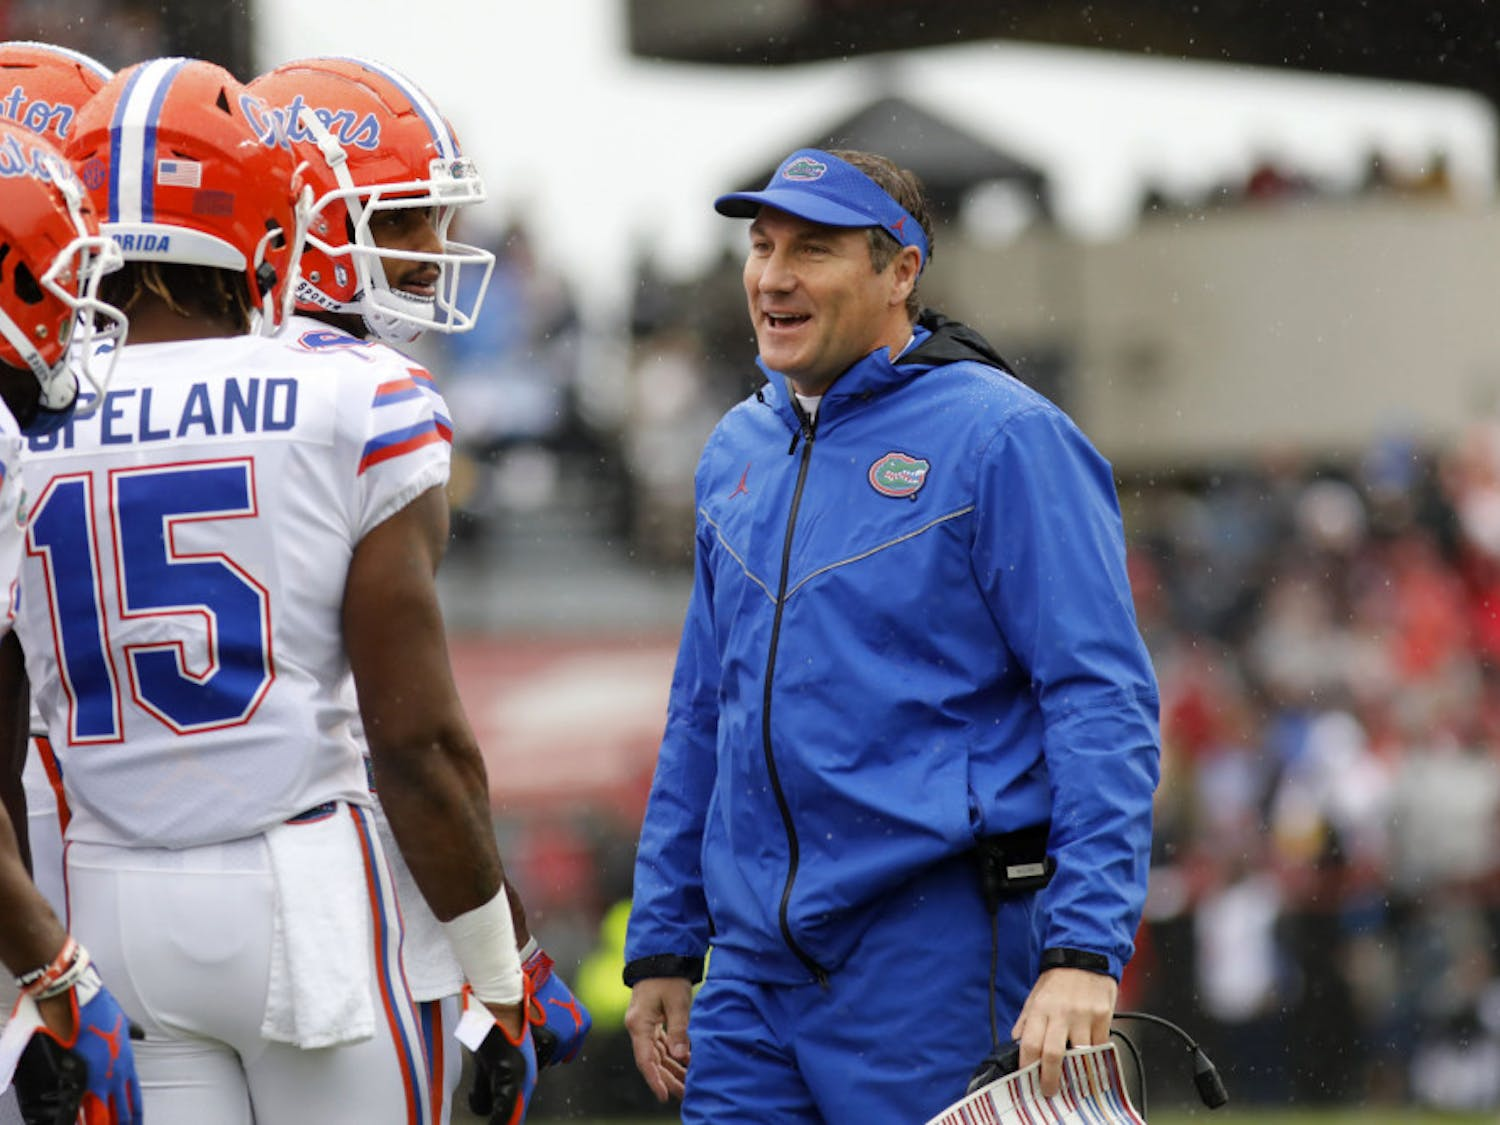 Florida's head coach Dan Mullen smiles with his players during the first half of an NCAA college football game against South Carolina, Saturday, Oct. 19, 2019, in Columbia, SC.